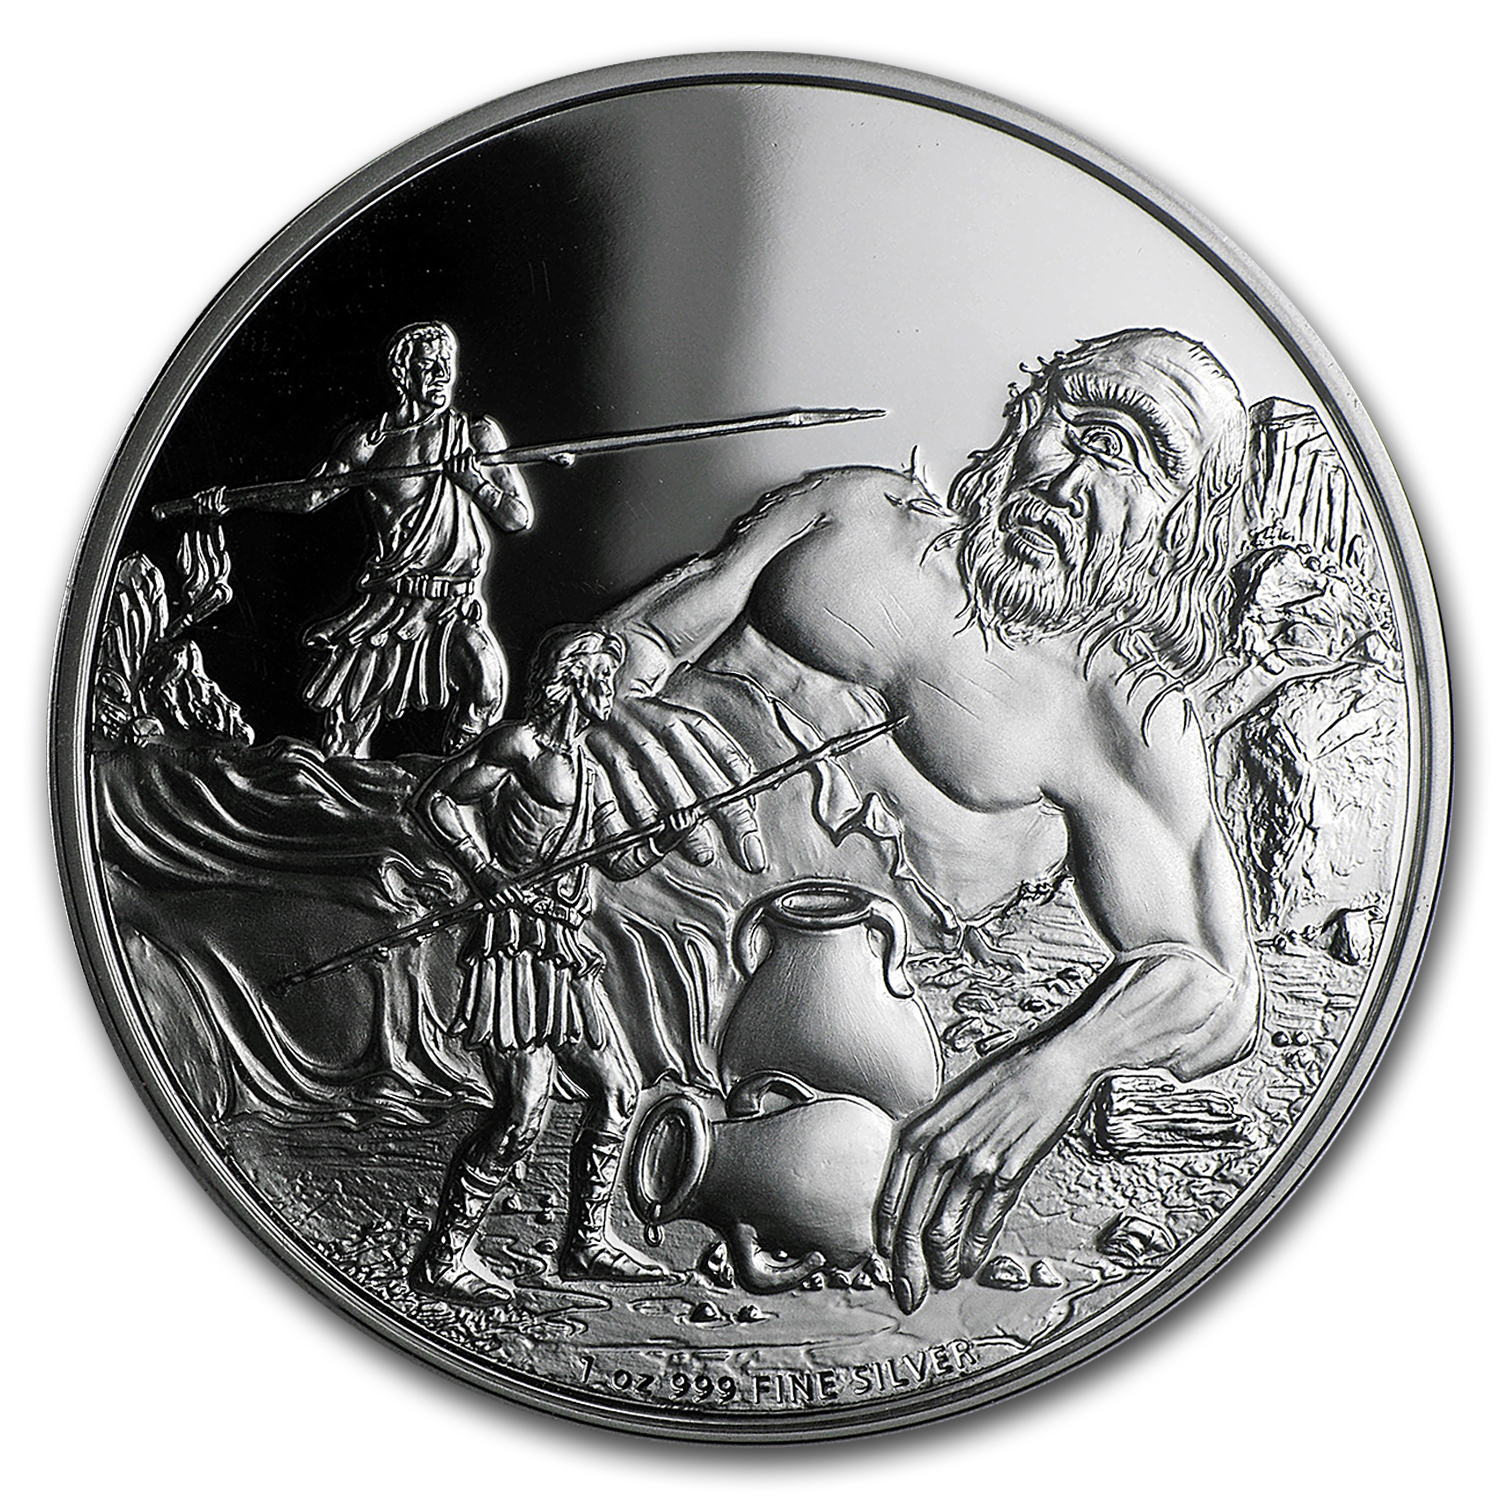 2016 Niue 1 oz Silver $2 Creatures of Greek Mythology Cyclops